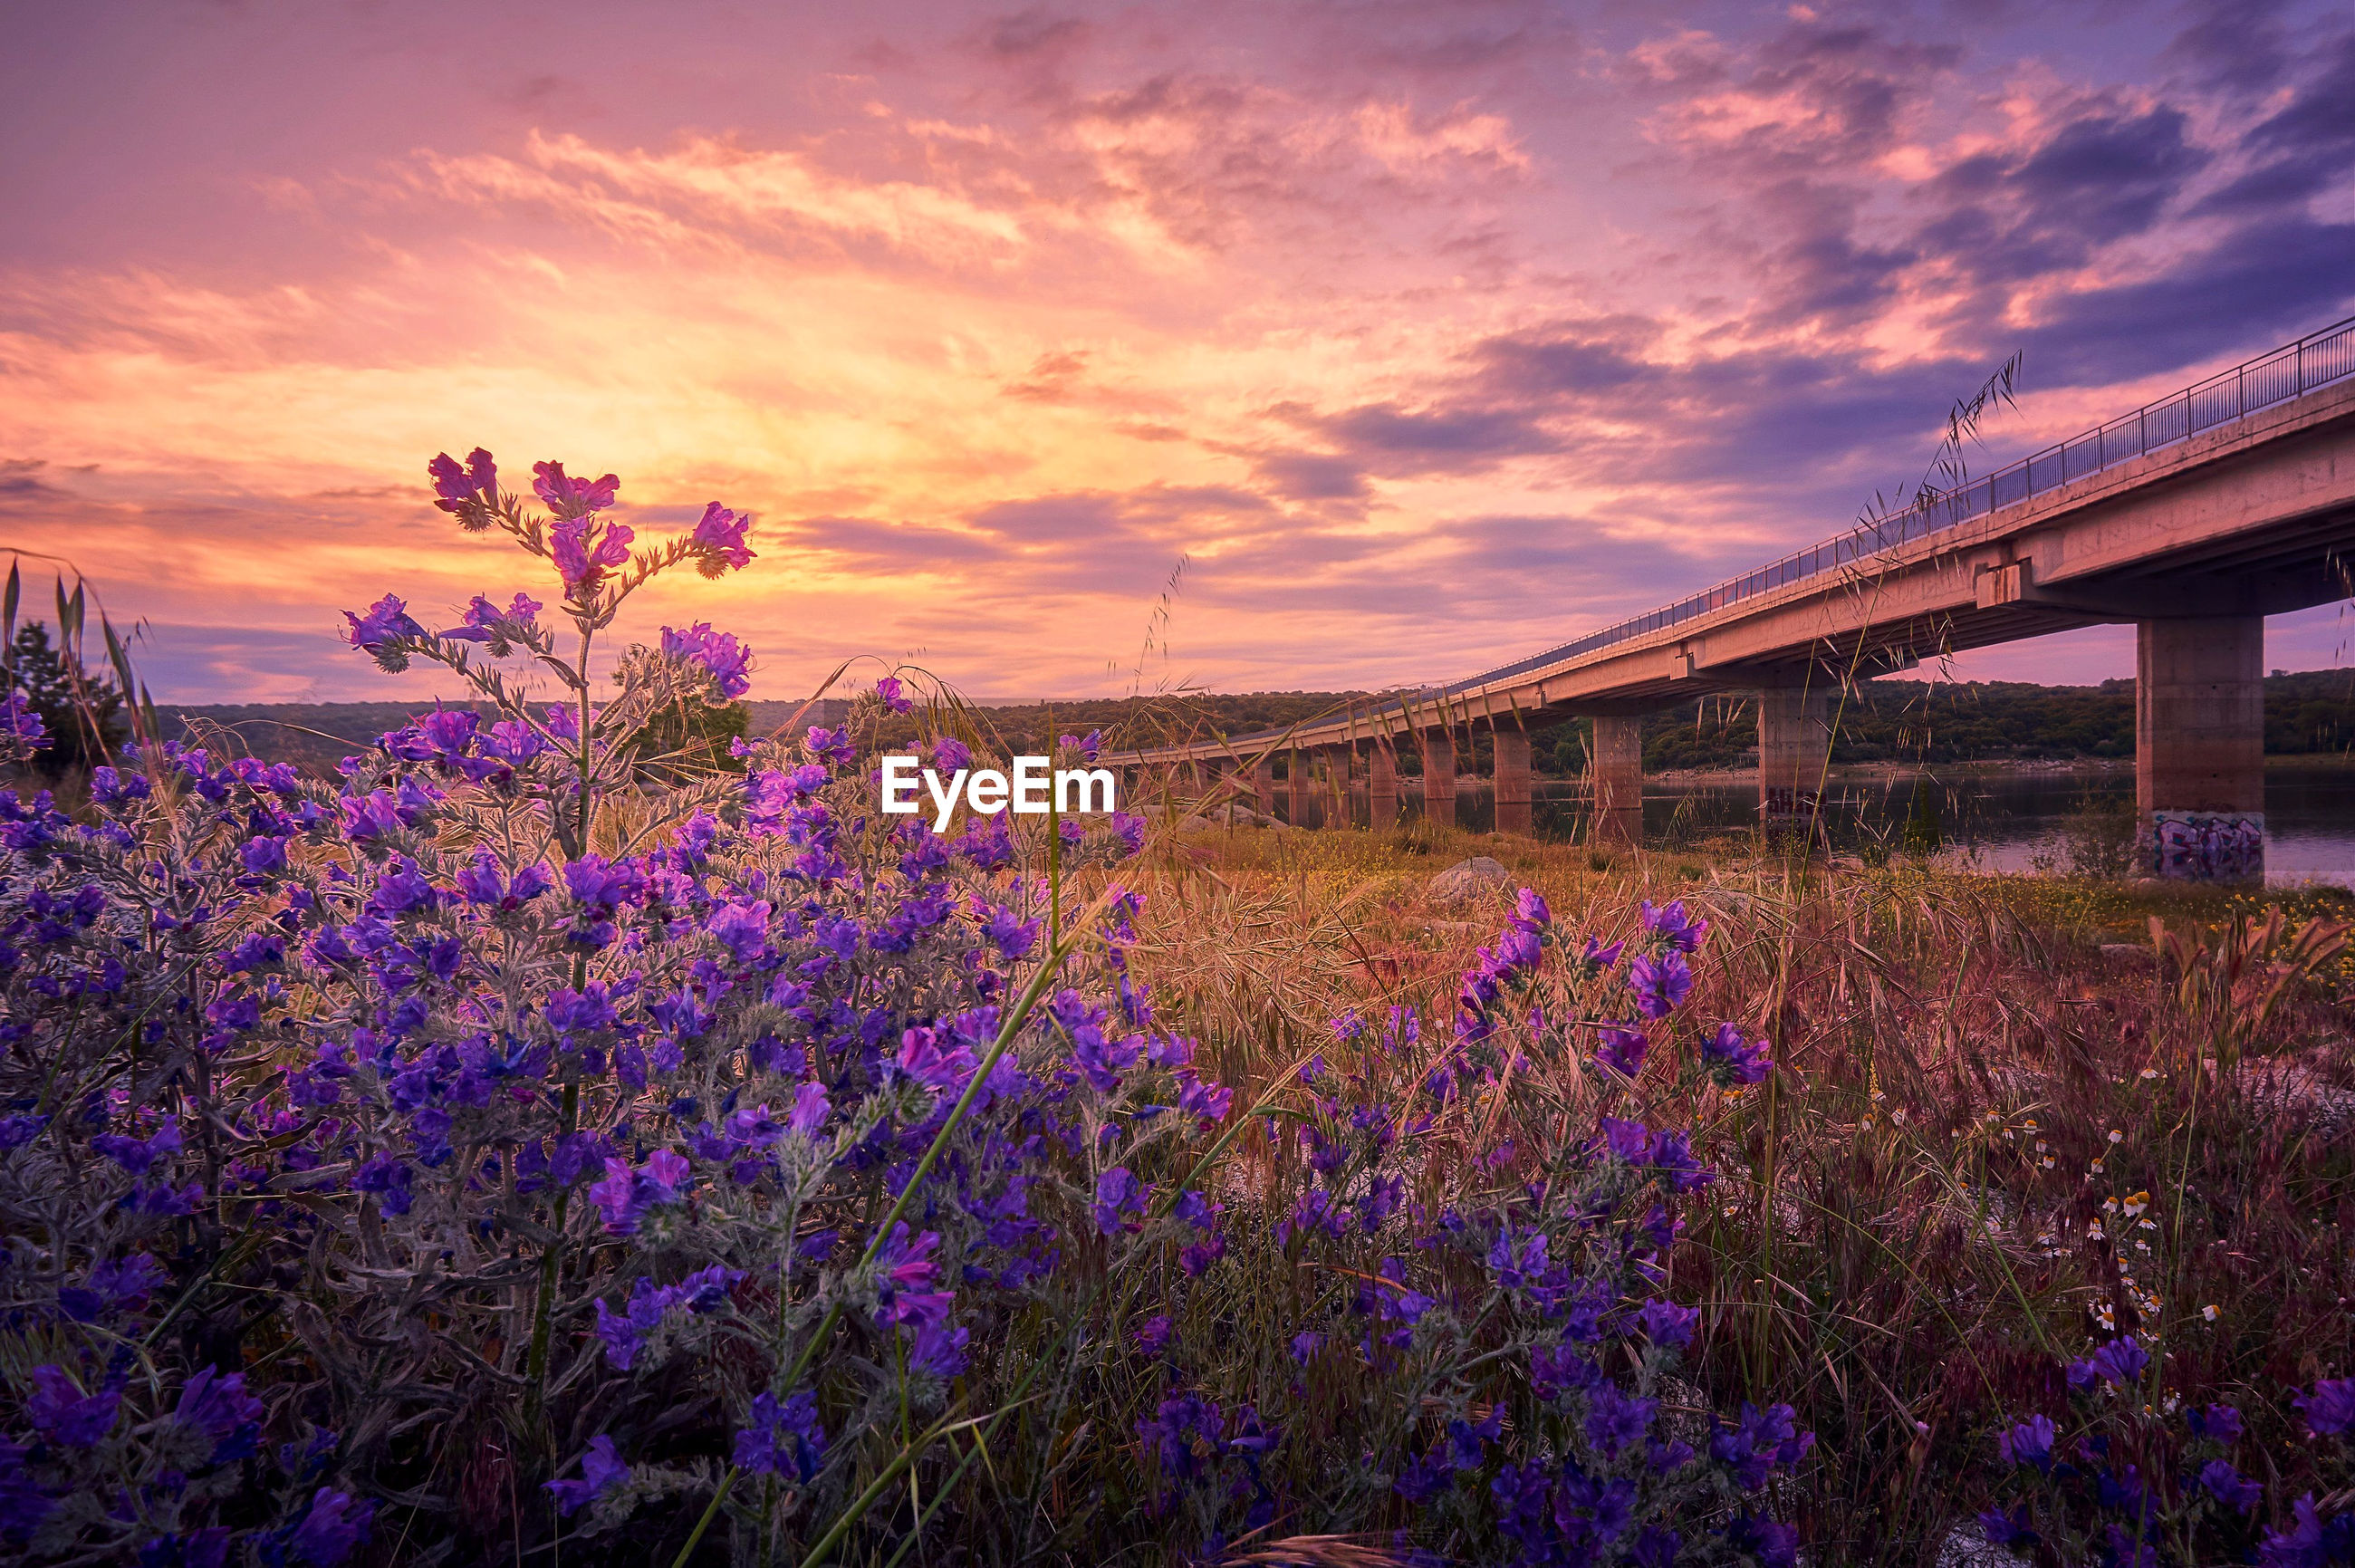 PURPLE FLOWERING PLANTS ON FIELD AGAINST SKY AT SUNSET